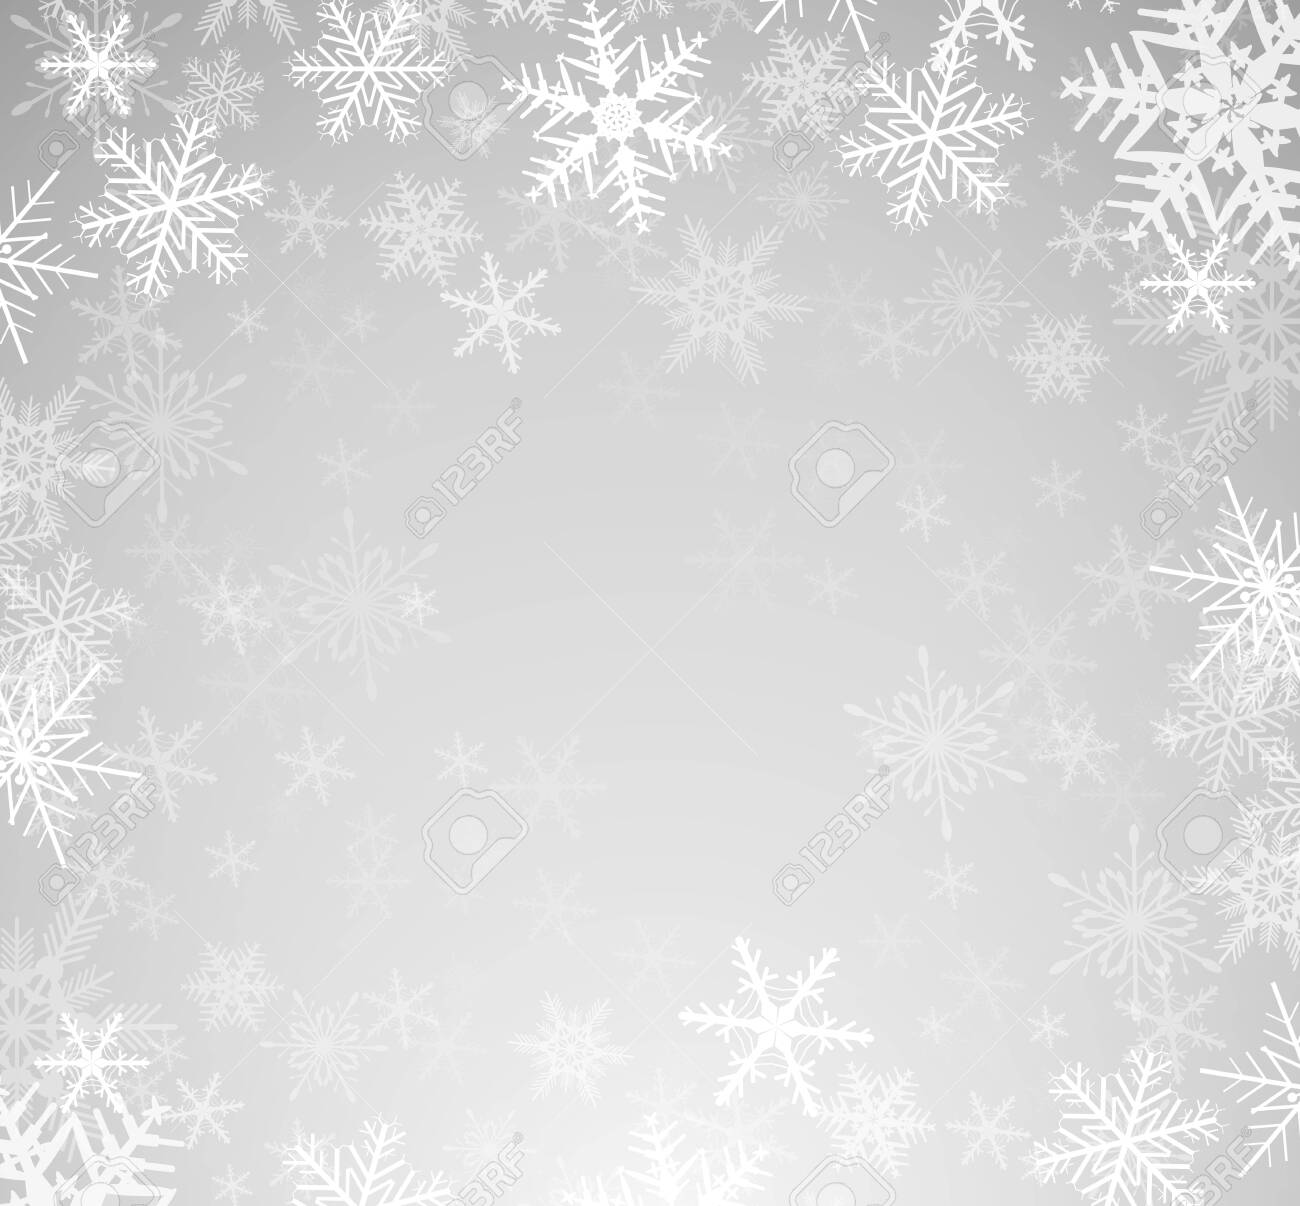 Christmas winter background with snowflakes, vector illustration. - 133053135